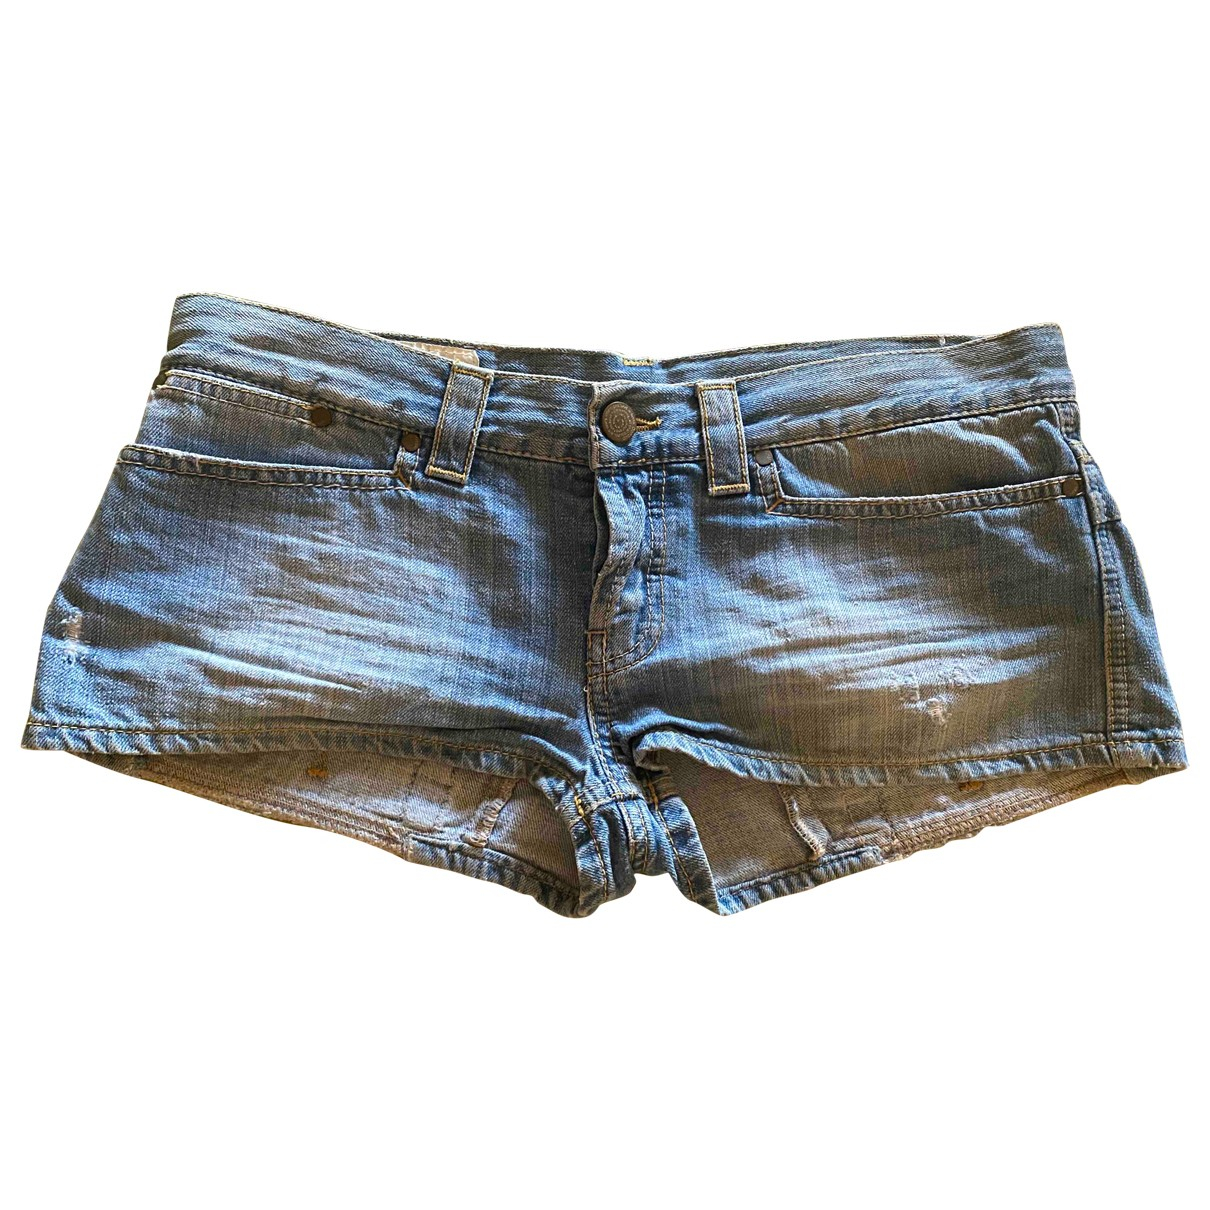 Dondup \N Denim - Jeans Shorts for Women 44 IT